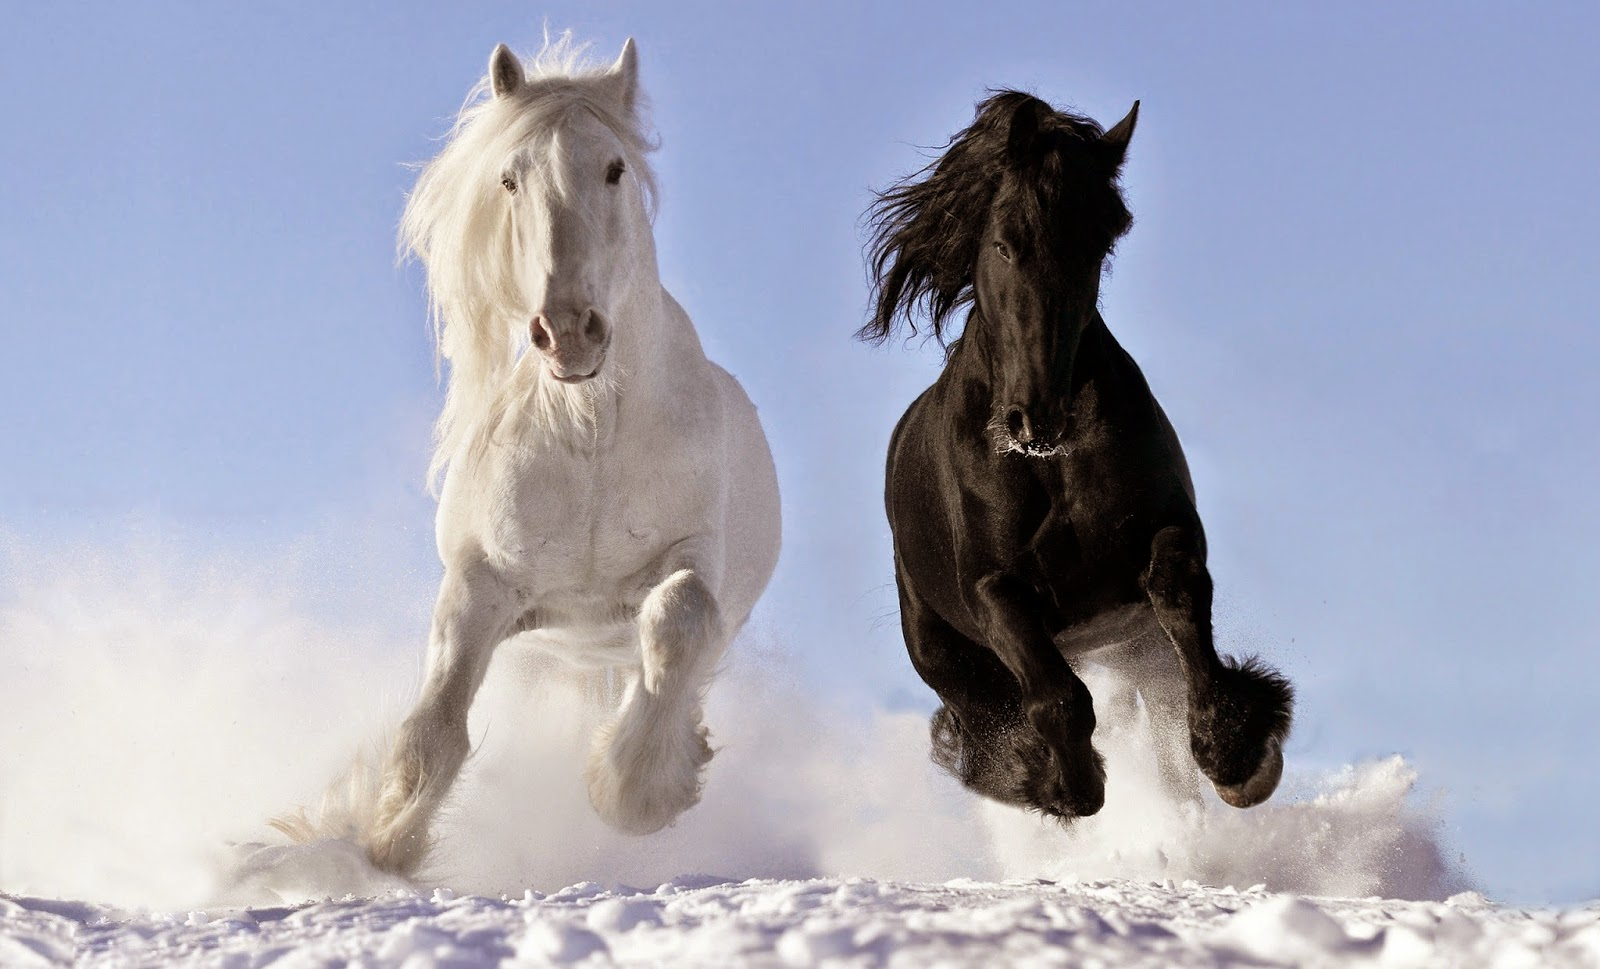 Black And White Horse Running Hd Wallpaper Get For Free Get For